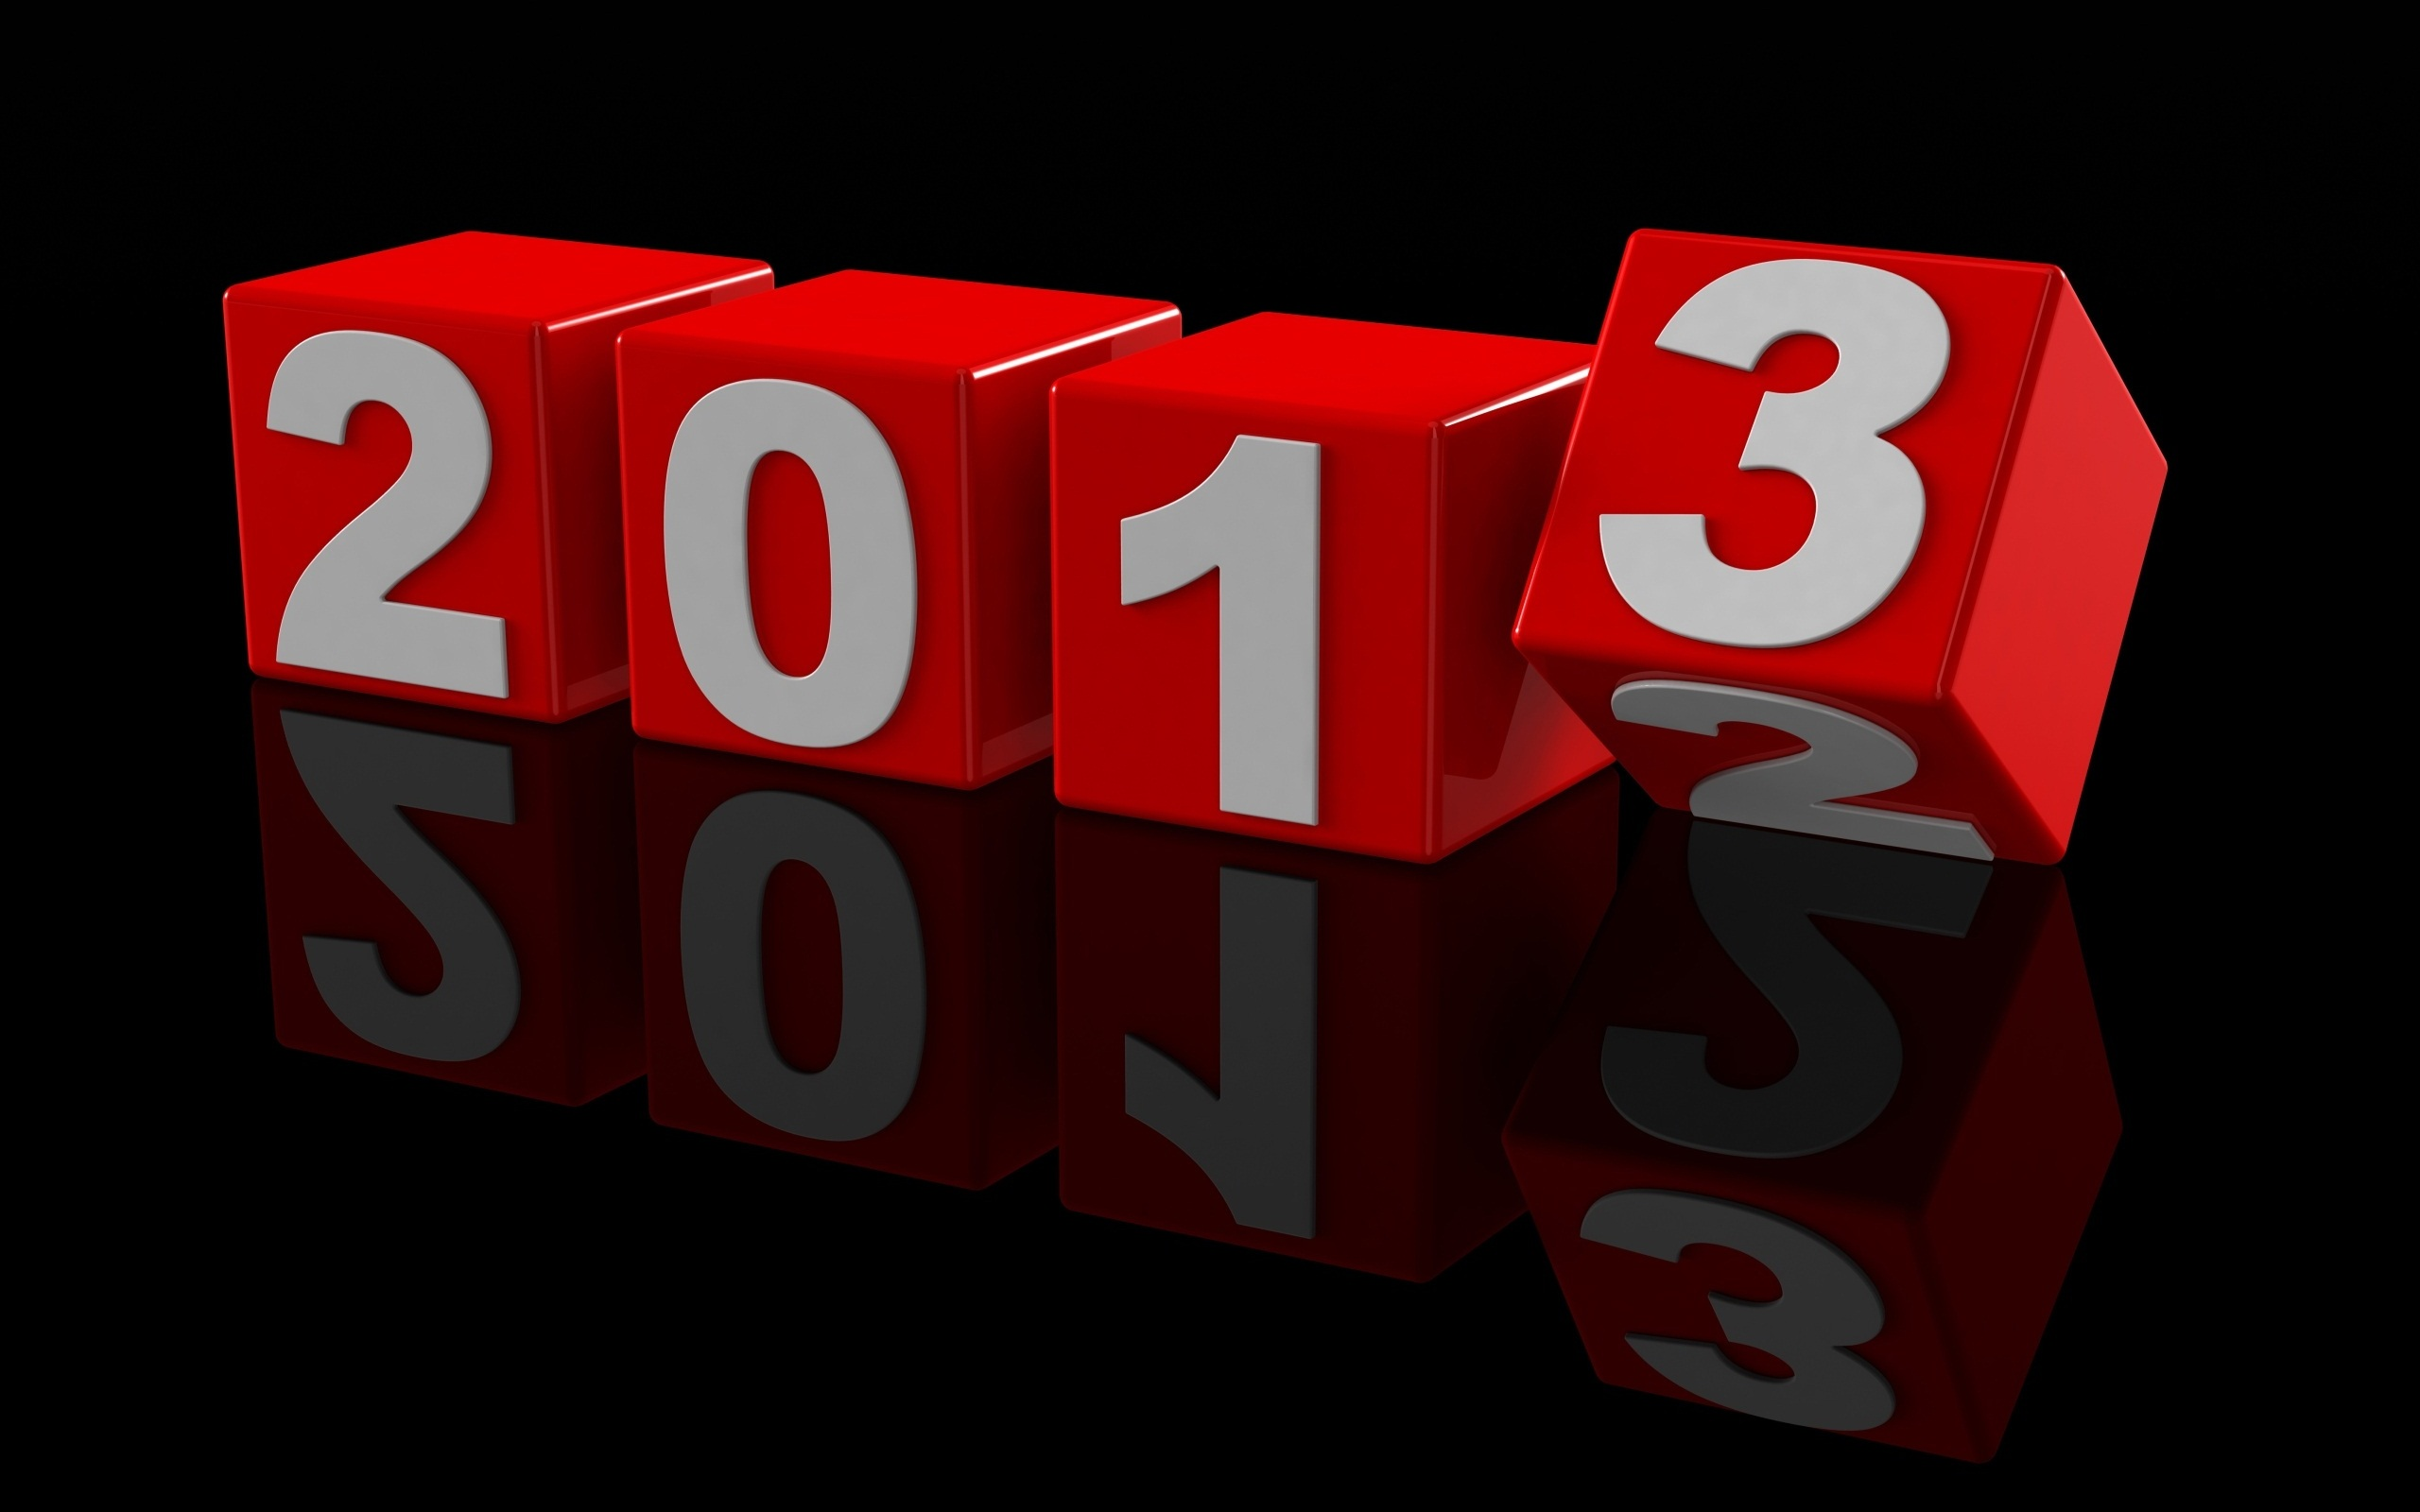 Happy new year 2013 Destop Wallpaper HD 2560×1600